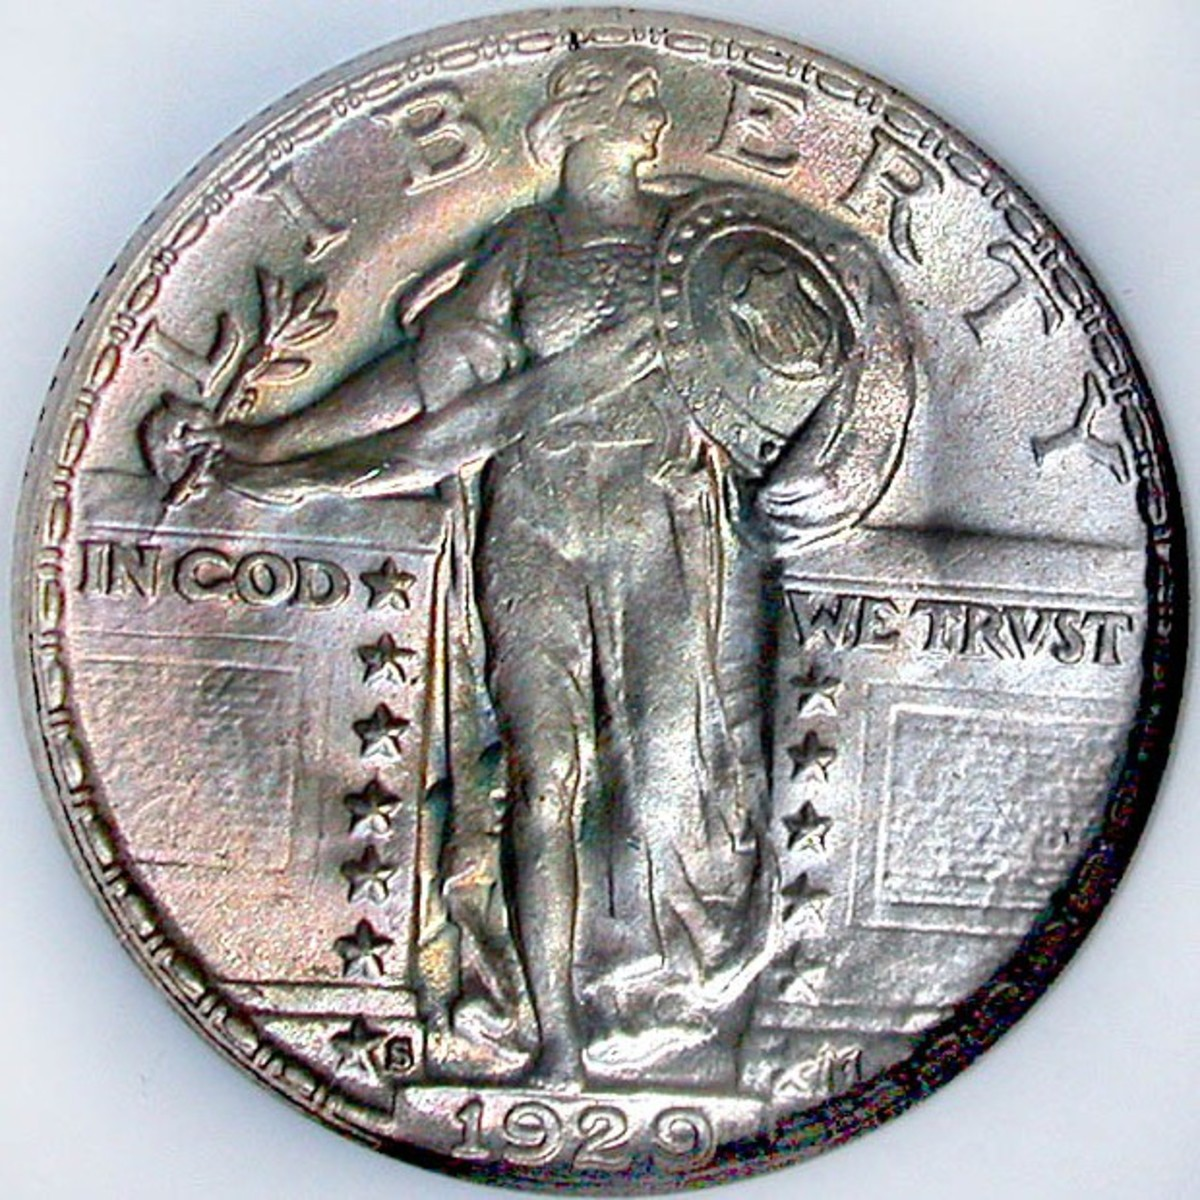 1929S Standing Liberty Quarter. Variety 2 w/covered breast. Mintmark can be observed by Liberty's feet. Photo Courtesy: coinpage.com